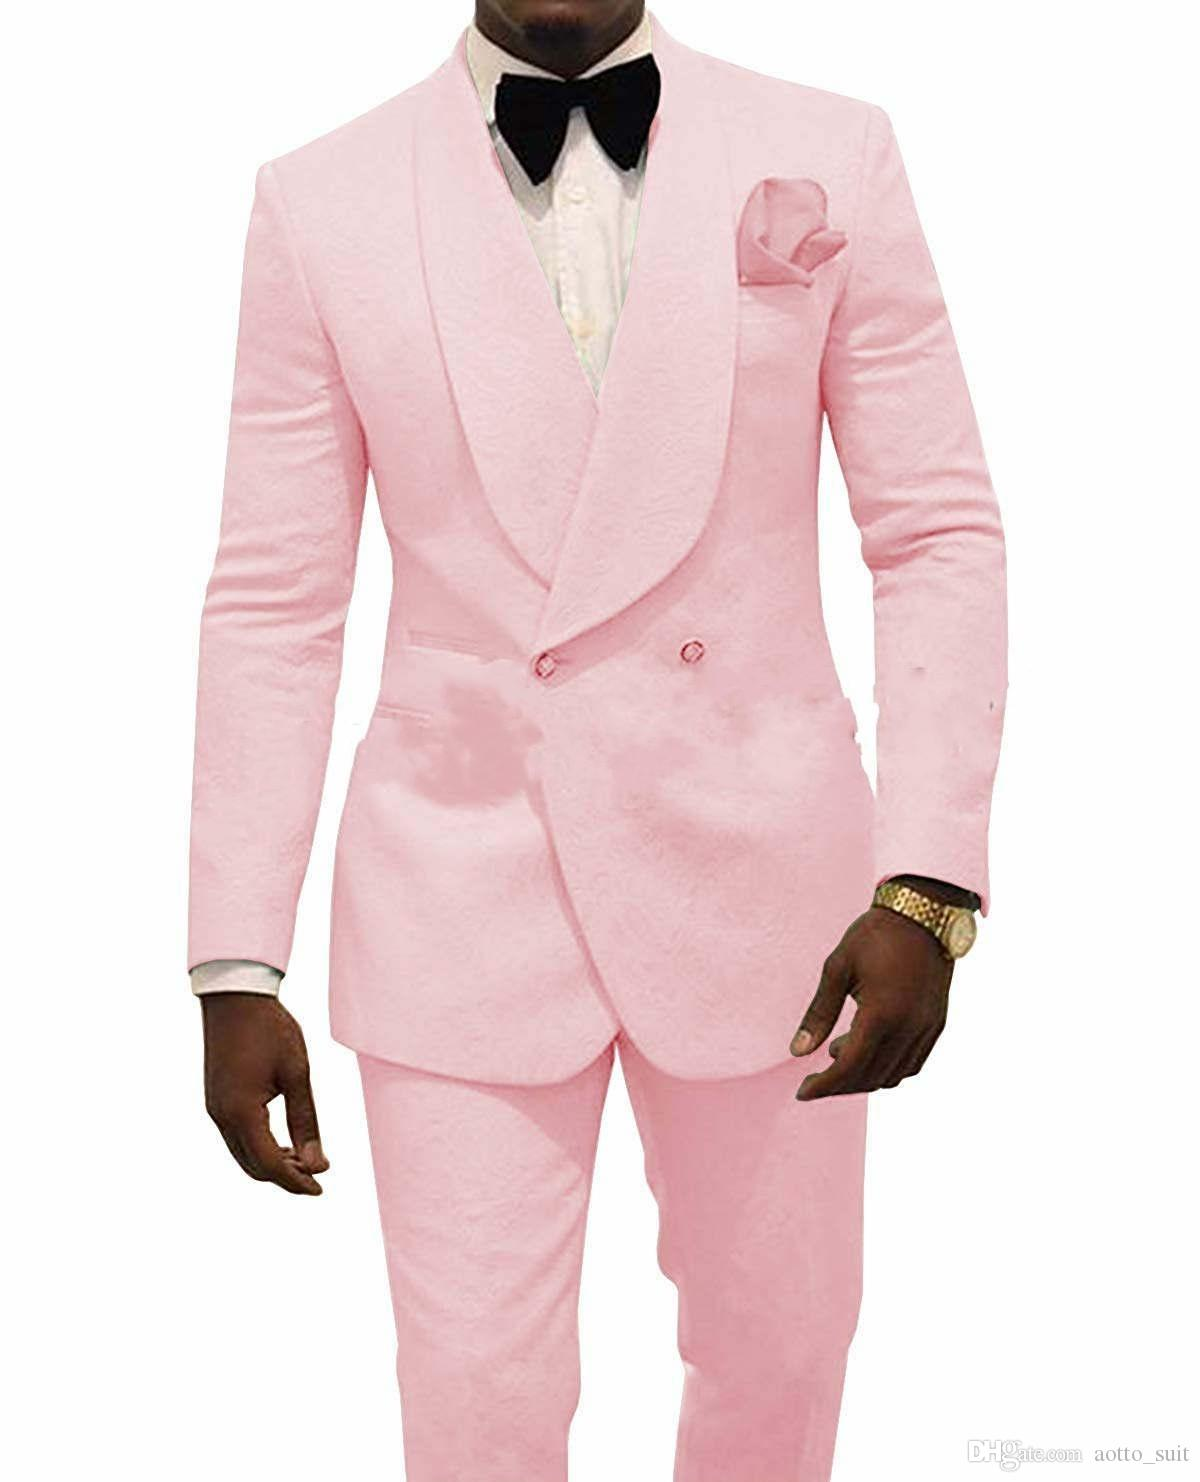 Embossing Groom Tuxedos Pink Mens Wedding Tuxedos Shawl Lapel Man Jacket Blazer Fashion Men Prom/Dinner 2Piece Suit(Jacket+Pants+Tie) 100